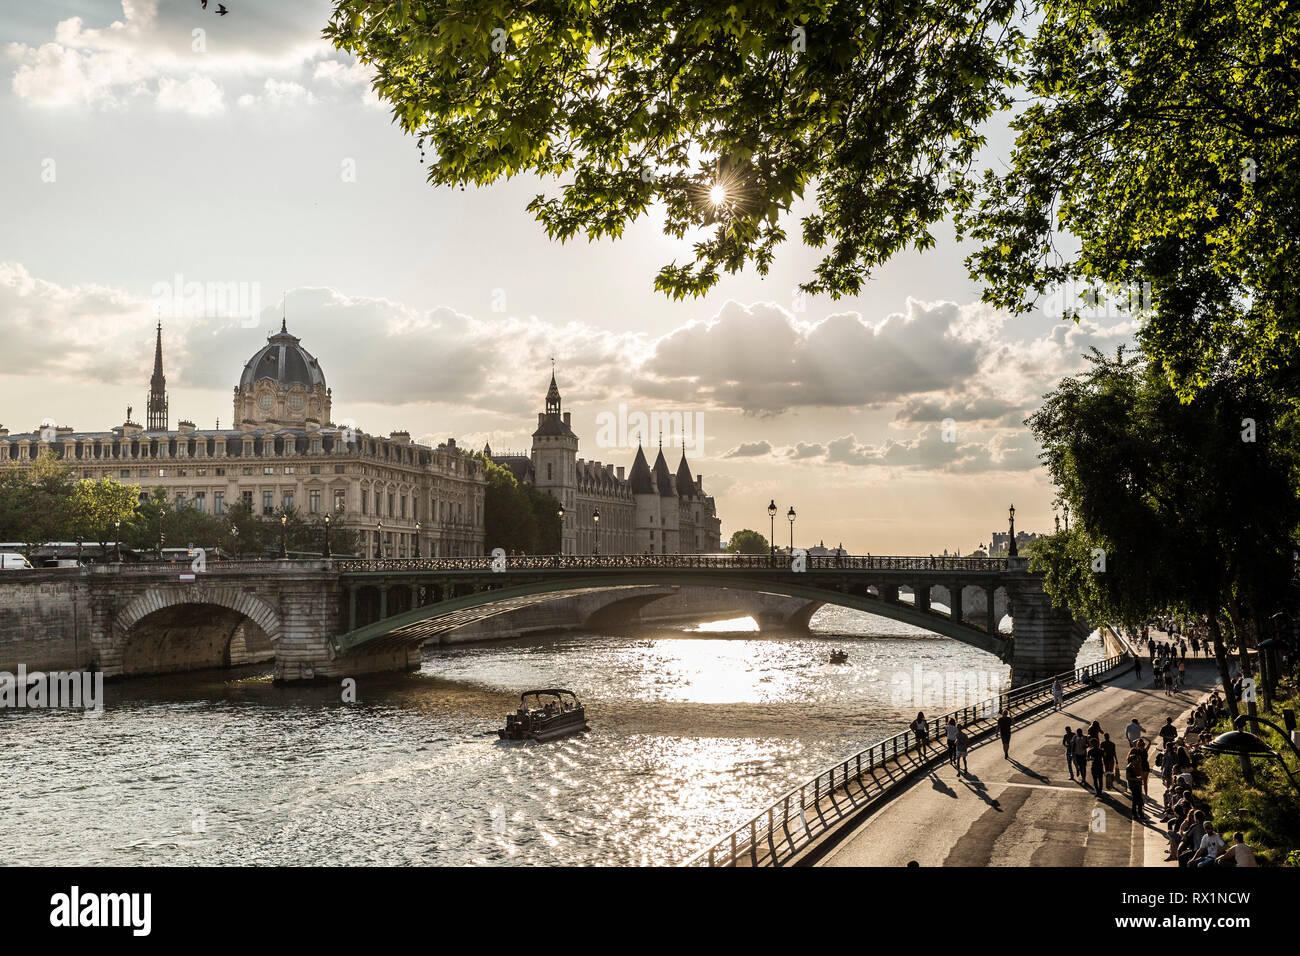 Pont Notre-Dame over Seine River against cloudy sky during sunset - Stock Image